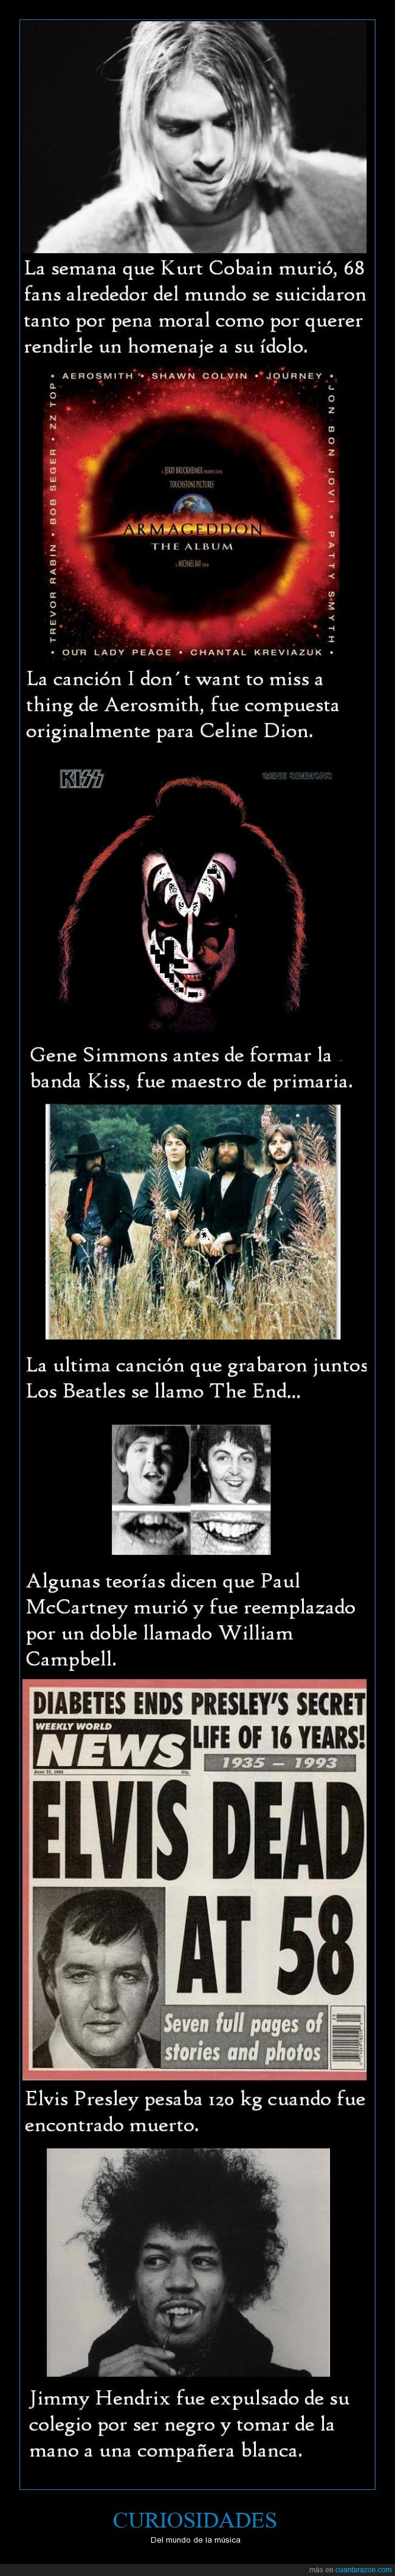 Aerosmith,armaggedon celine dion,curiosidad,Elvis,Jimi Hendrix,kiss,Kurt Cobain,the beatles,the end